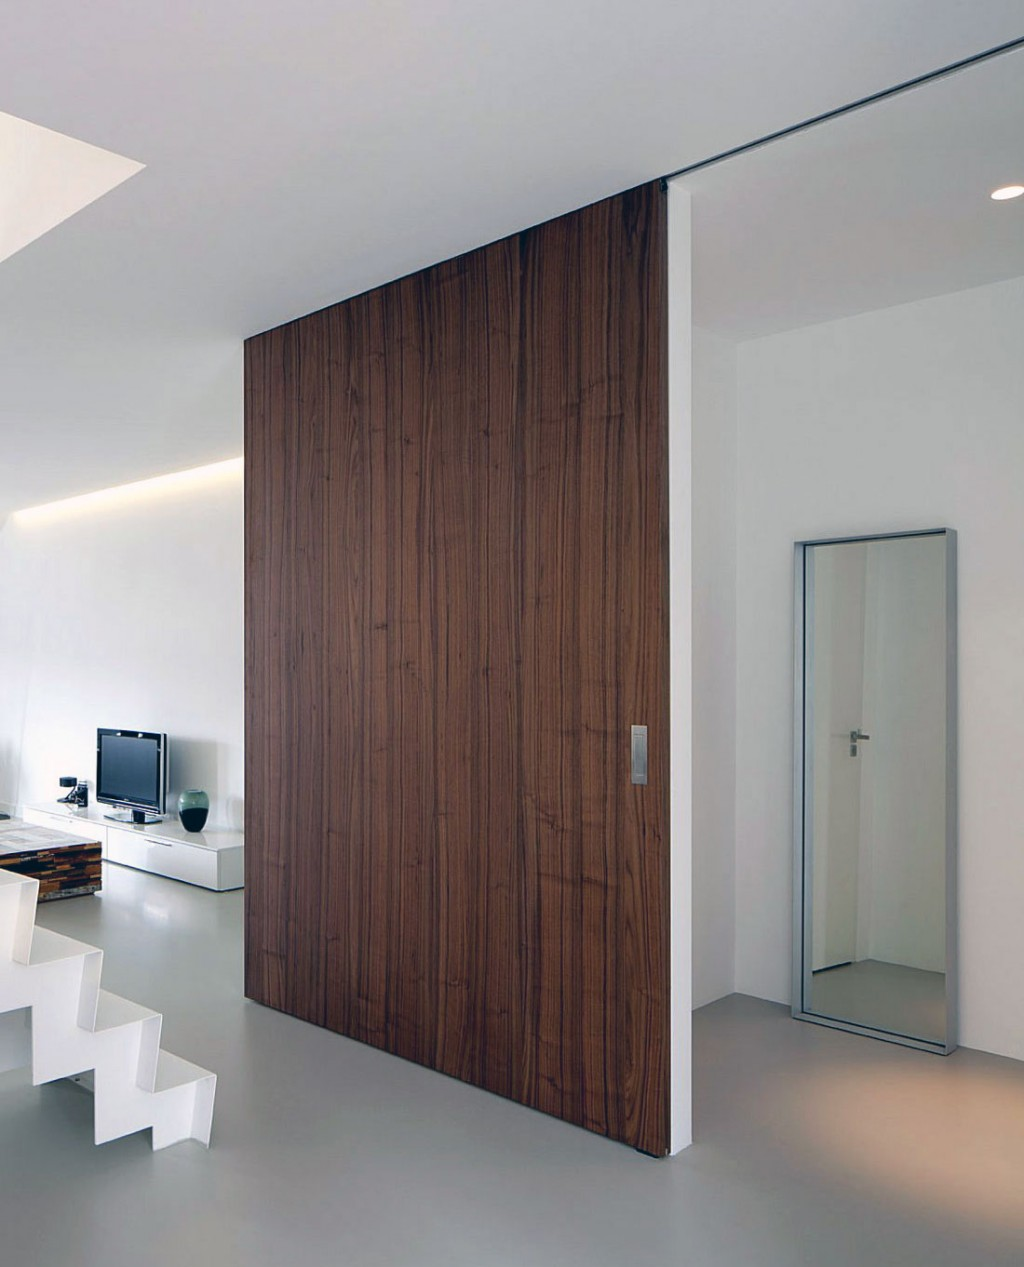 Design Large Sliding Doors sliding doors modern for sale feel free to contact us get your non warping door consultation